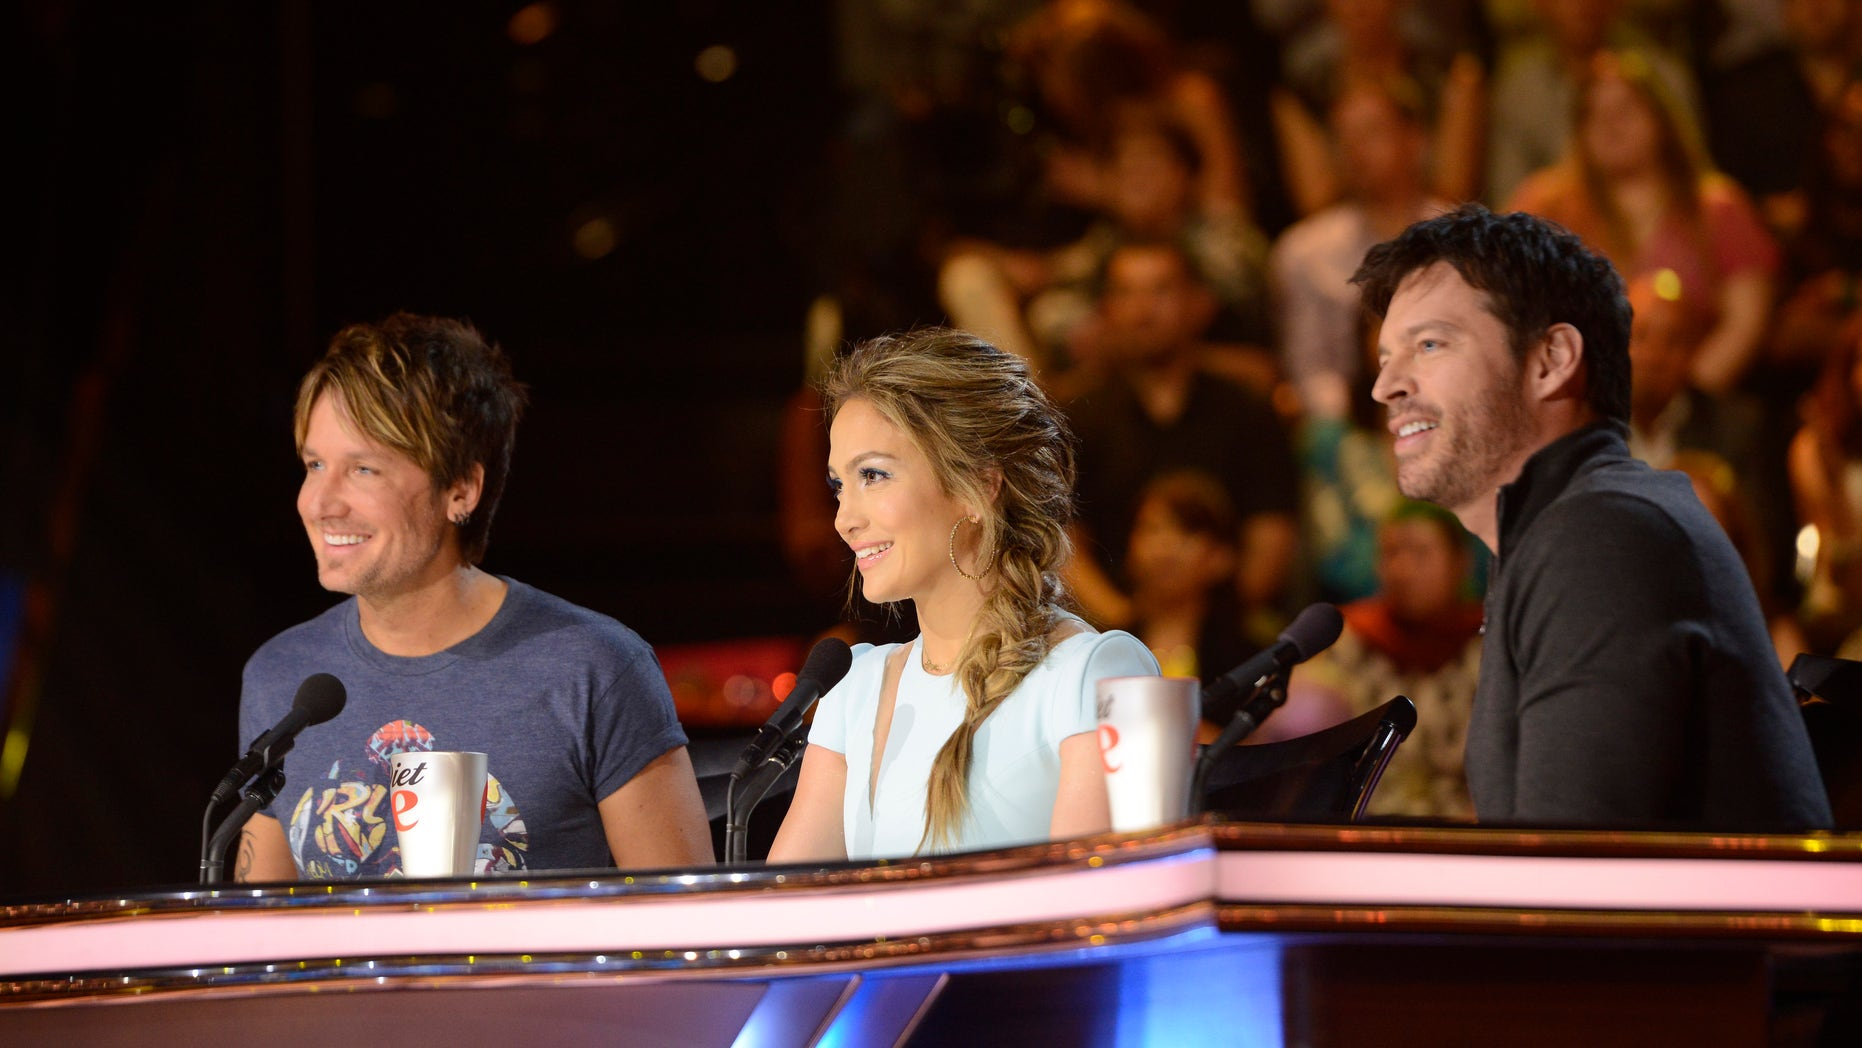 AMERICAN IDOL XIII:  L-R: Keith Urban, Jennifer Lopez and Harry Connick, Jr. on AMERICAN IDOL XIII airing Wednesday, March 19 (8:00-10:00 PM ET / PT) on FOX. CR: Michael Becker / FOX. Copyright 2014 / FOX Broadcasting.